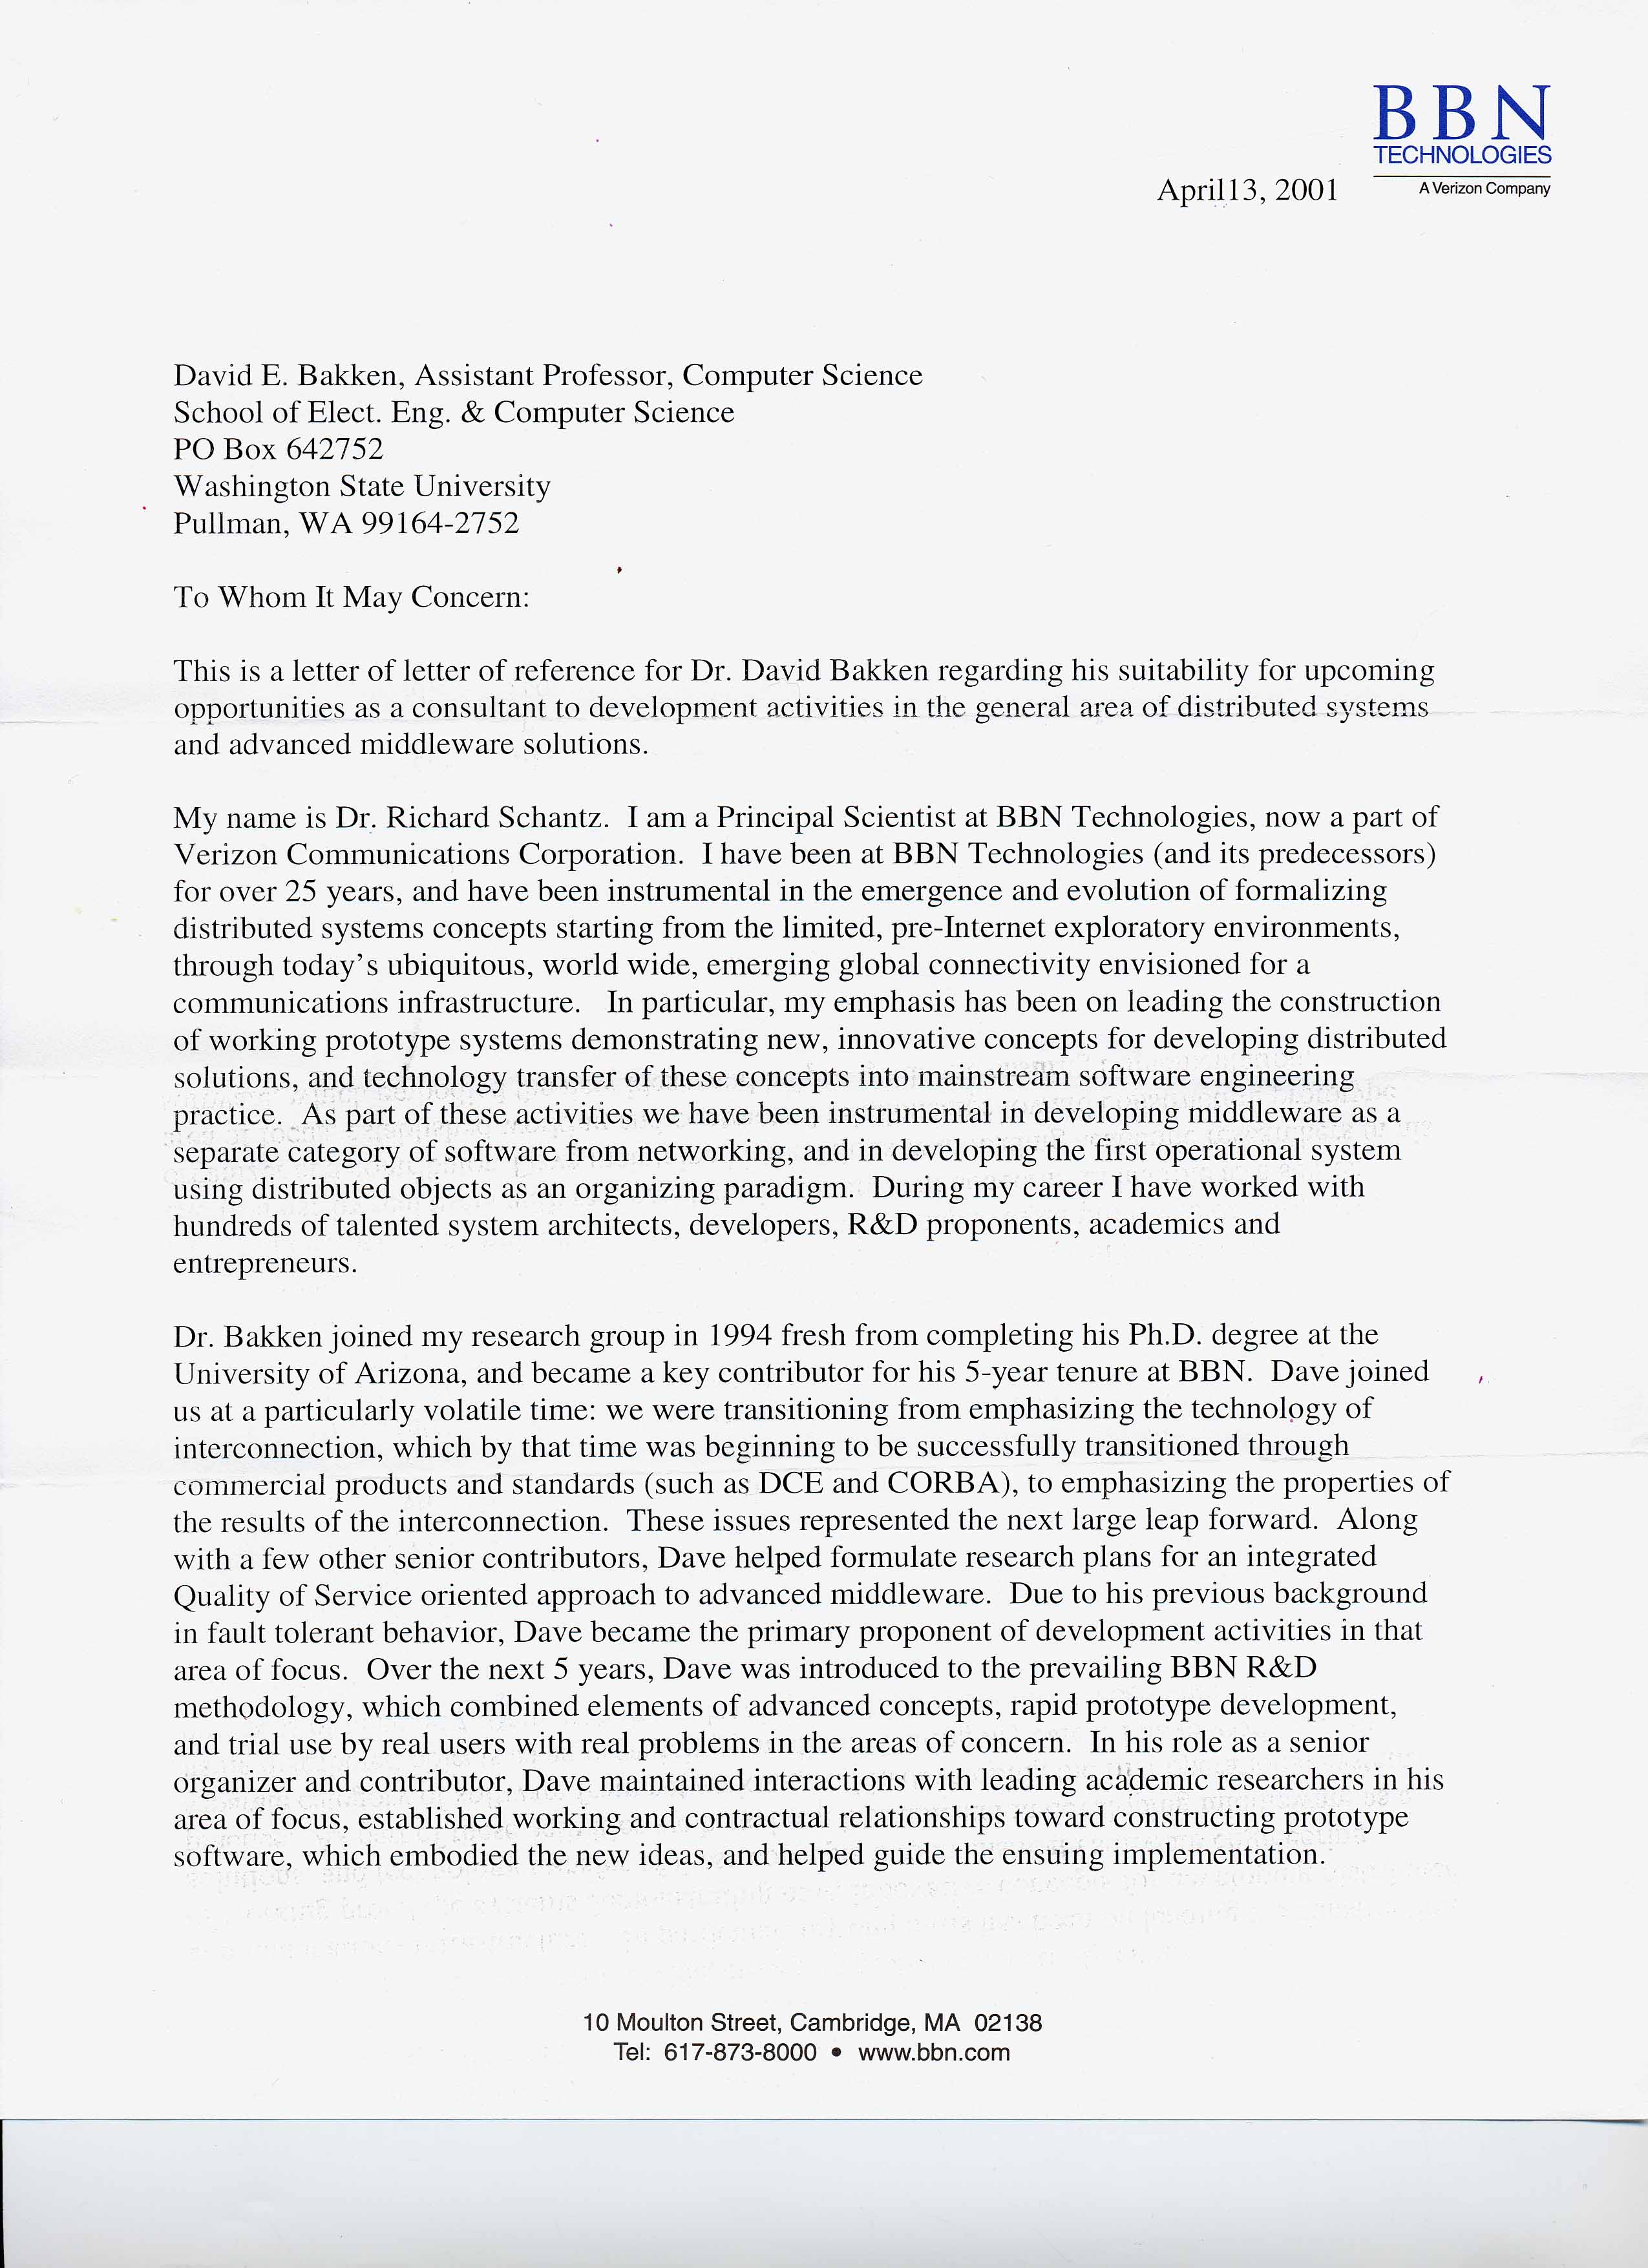 Sample Letter Of Recommendation For Law School From ...